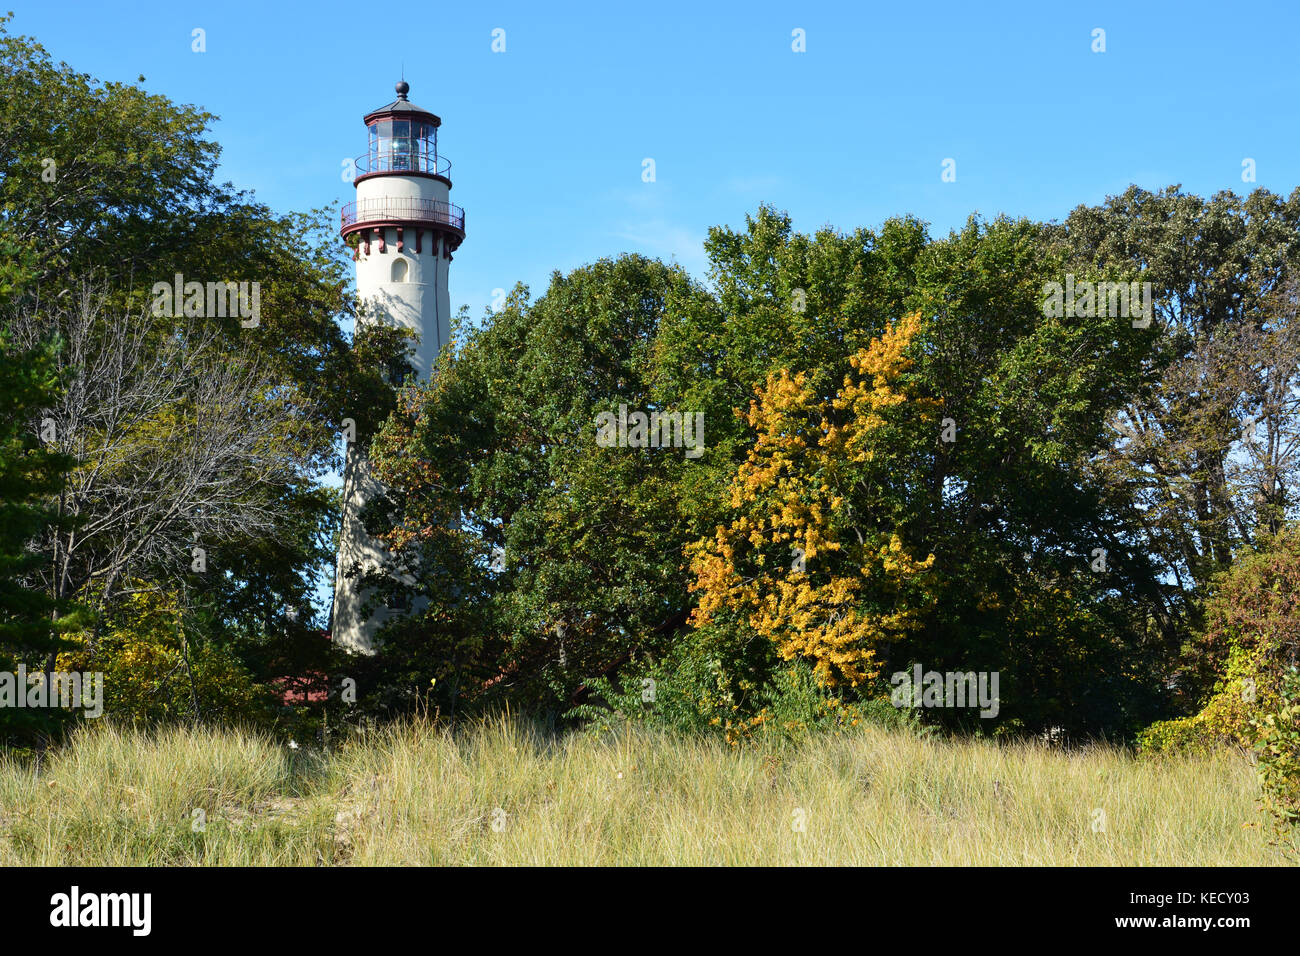 The tower rises above the trees at the Grosse Point Light Station on the shoreline of Lake Michigan in Evanston - Stock Image